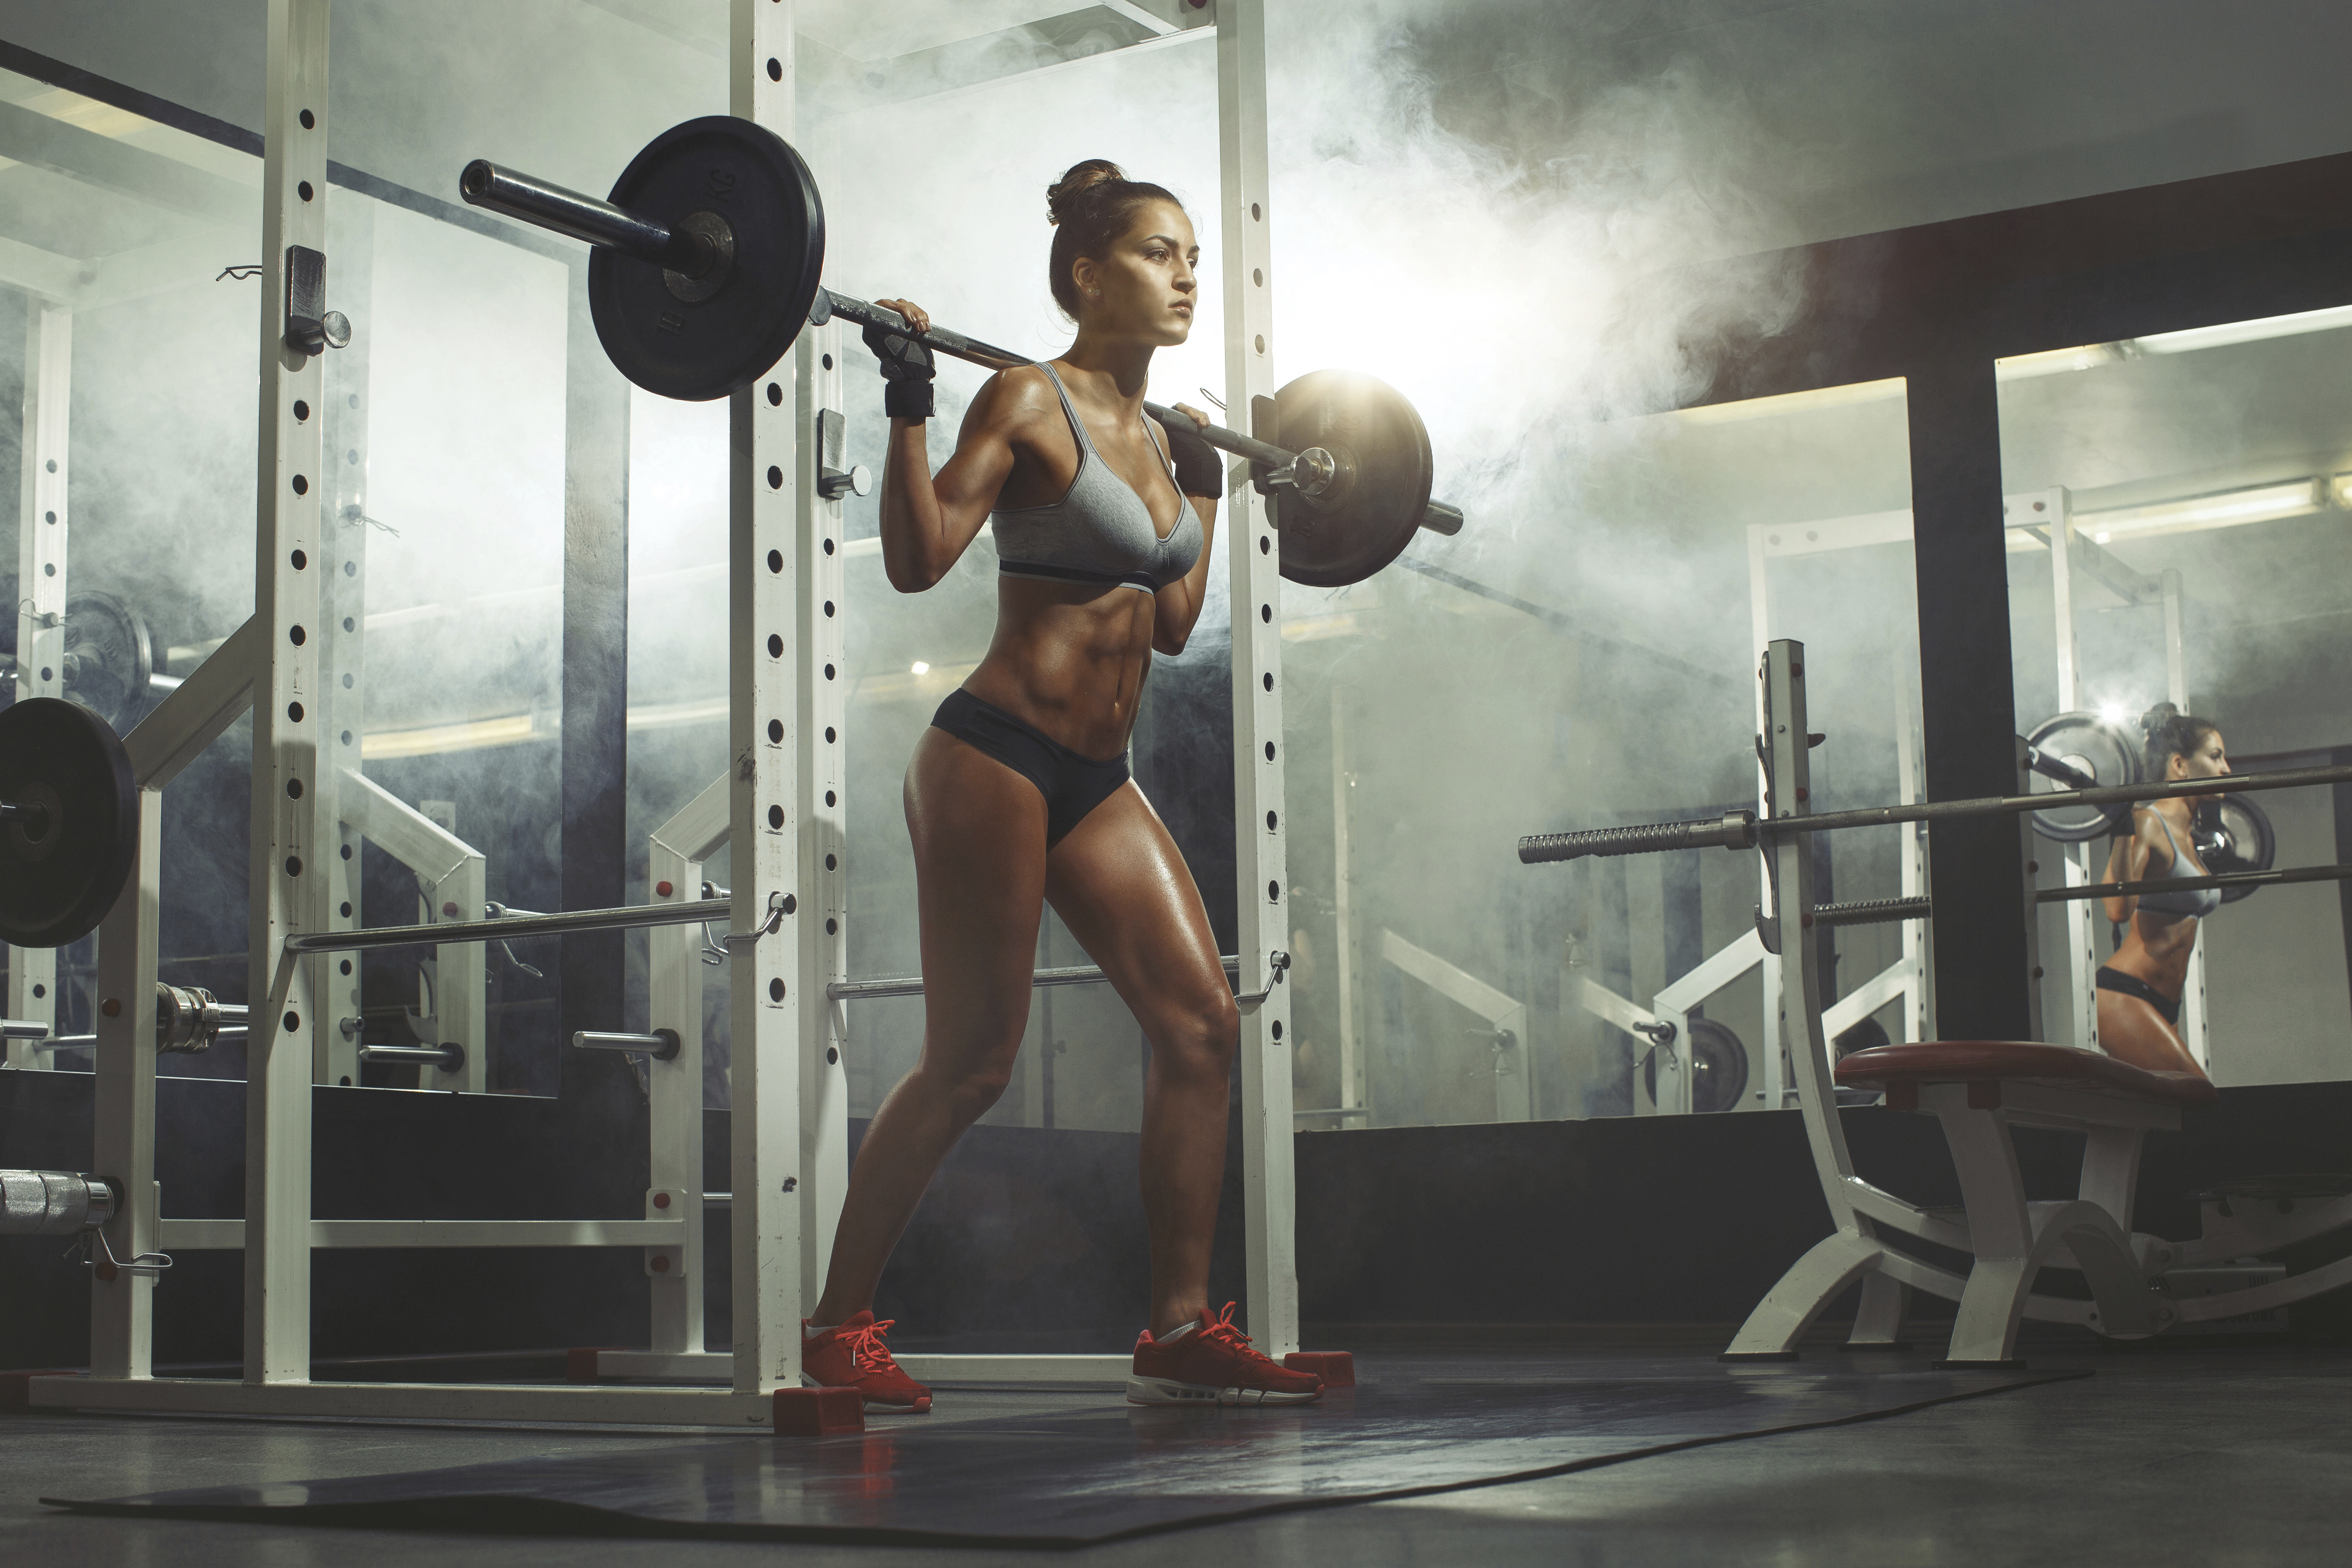 5 common bodybuilding mistakes (and how to fix them)